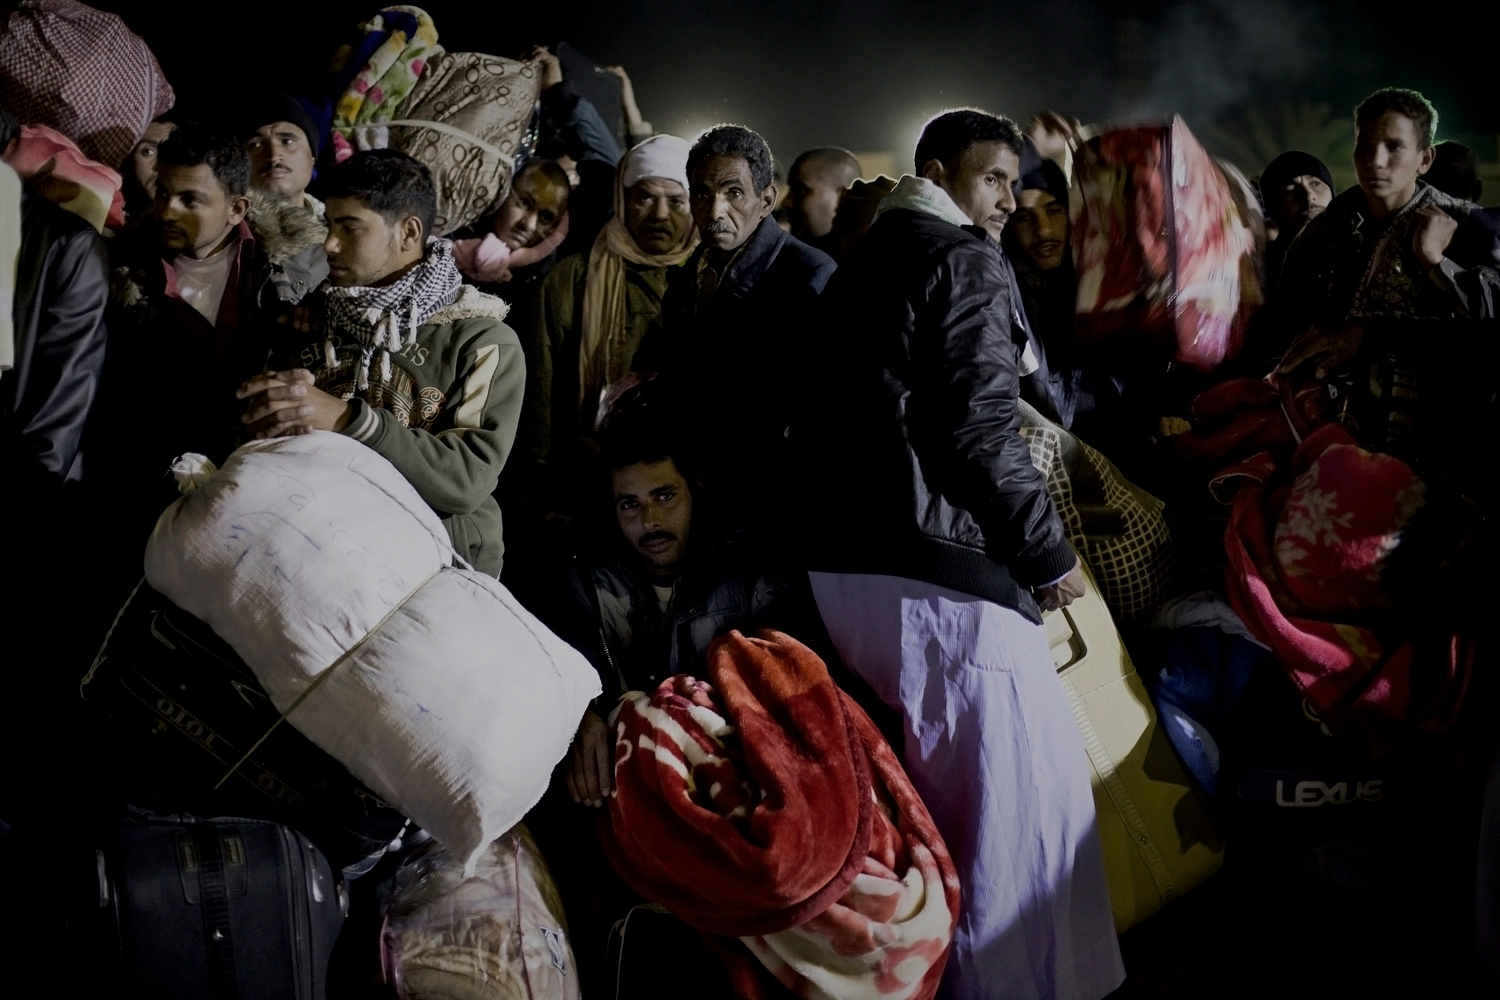 March 28, 2011. Refugess wait for hours to be let through the border of Libya and Tunisia in Ras Ajdir. Refugees flooded the western border of Libya after weeks of unrest and the threat of civil war plagued the country.